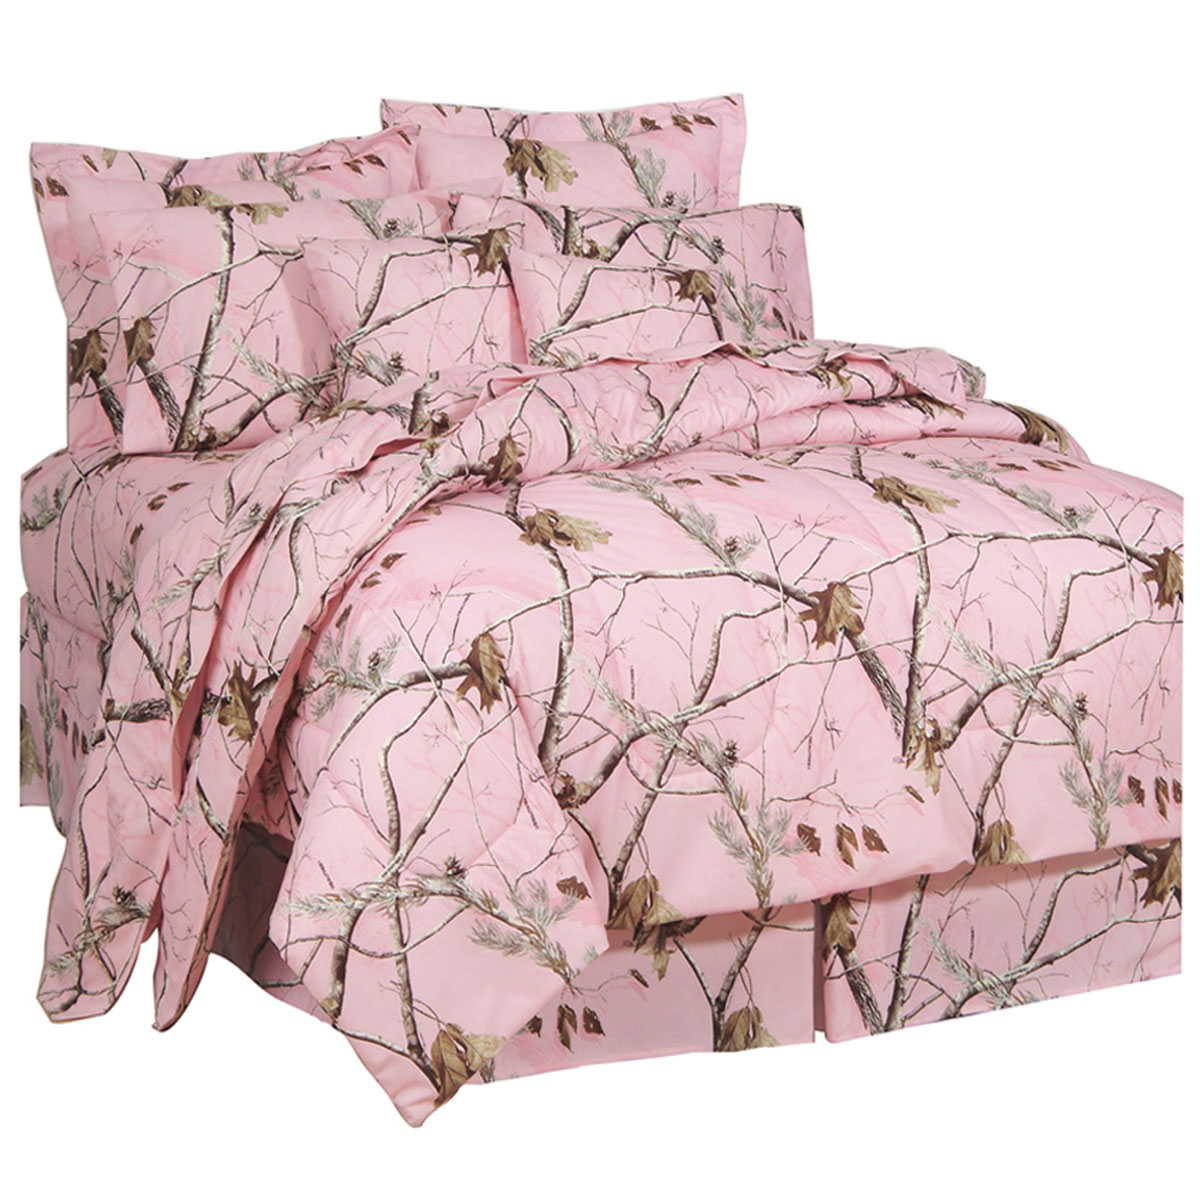 All Purpose Pink Camo By Realtree Beddingsuperstore Com